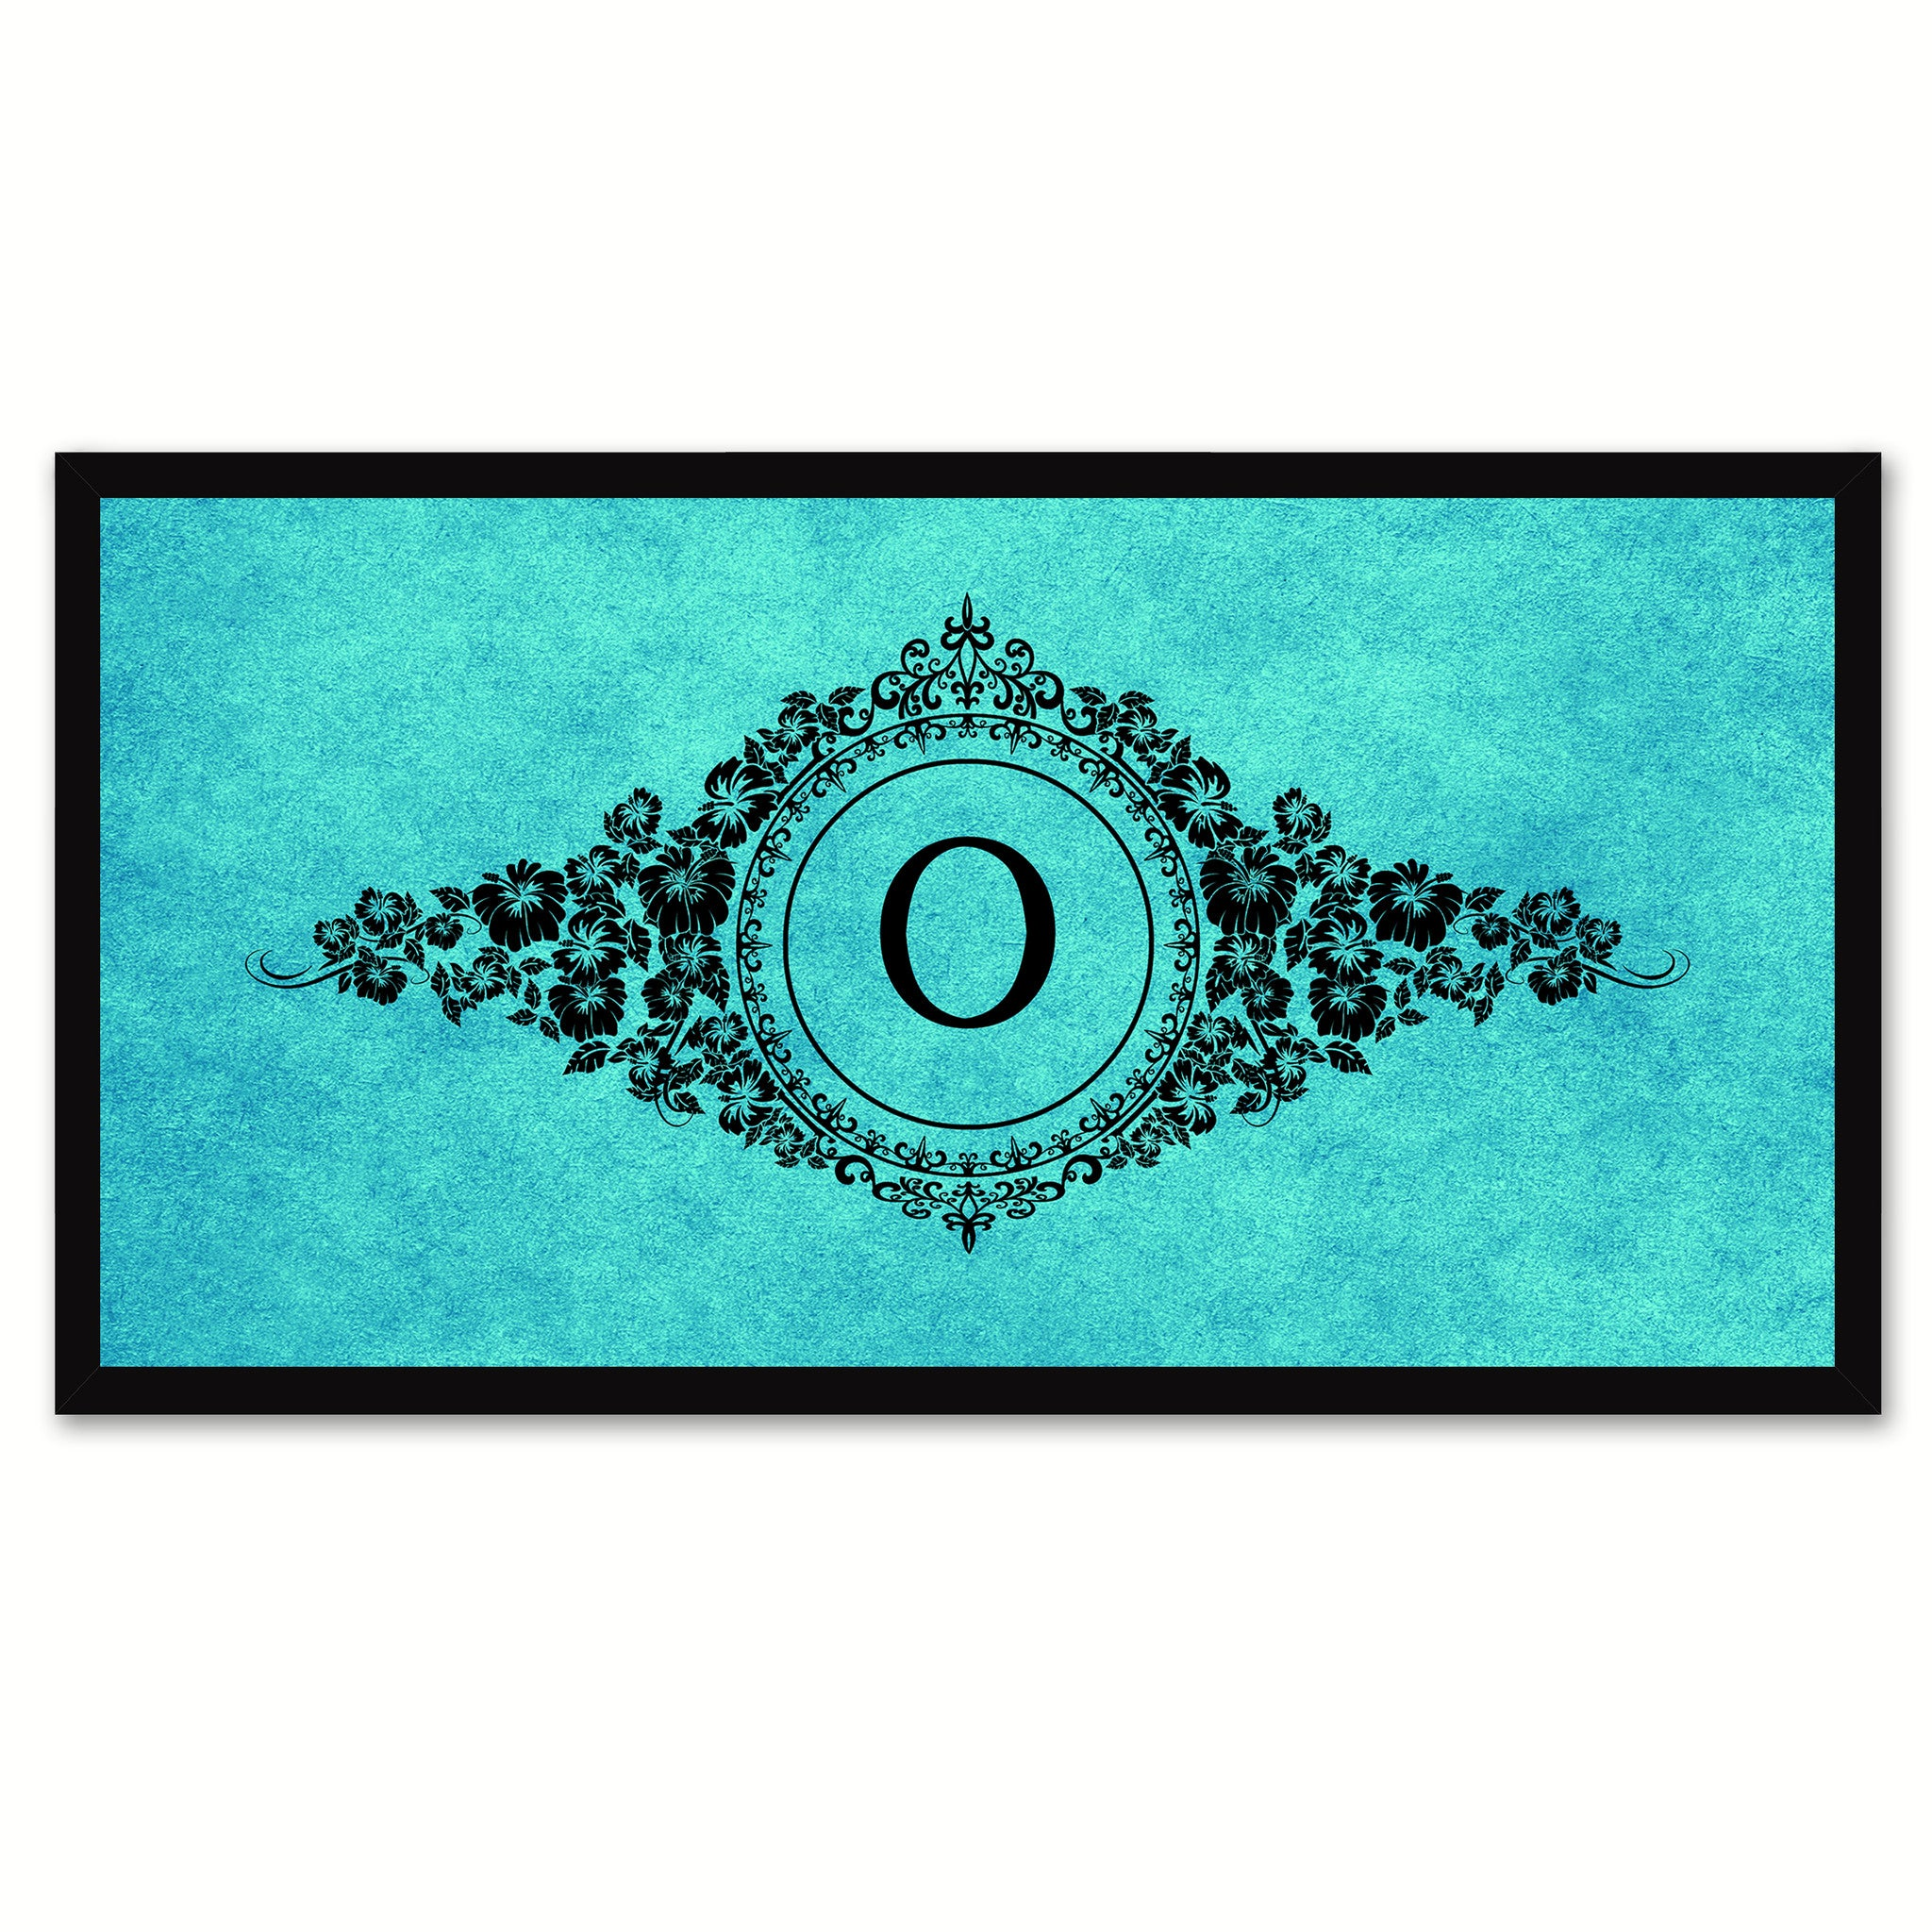 Alphabet Letter O Auqa Canvas Print, Black Custom Frame